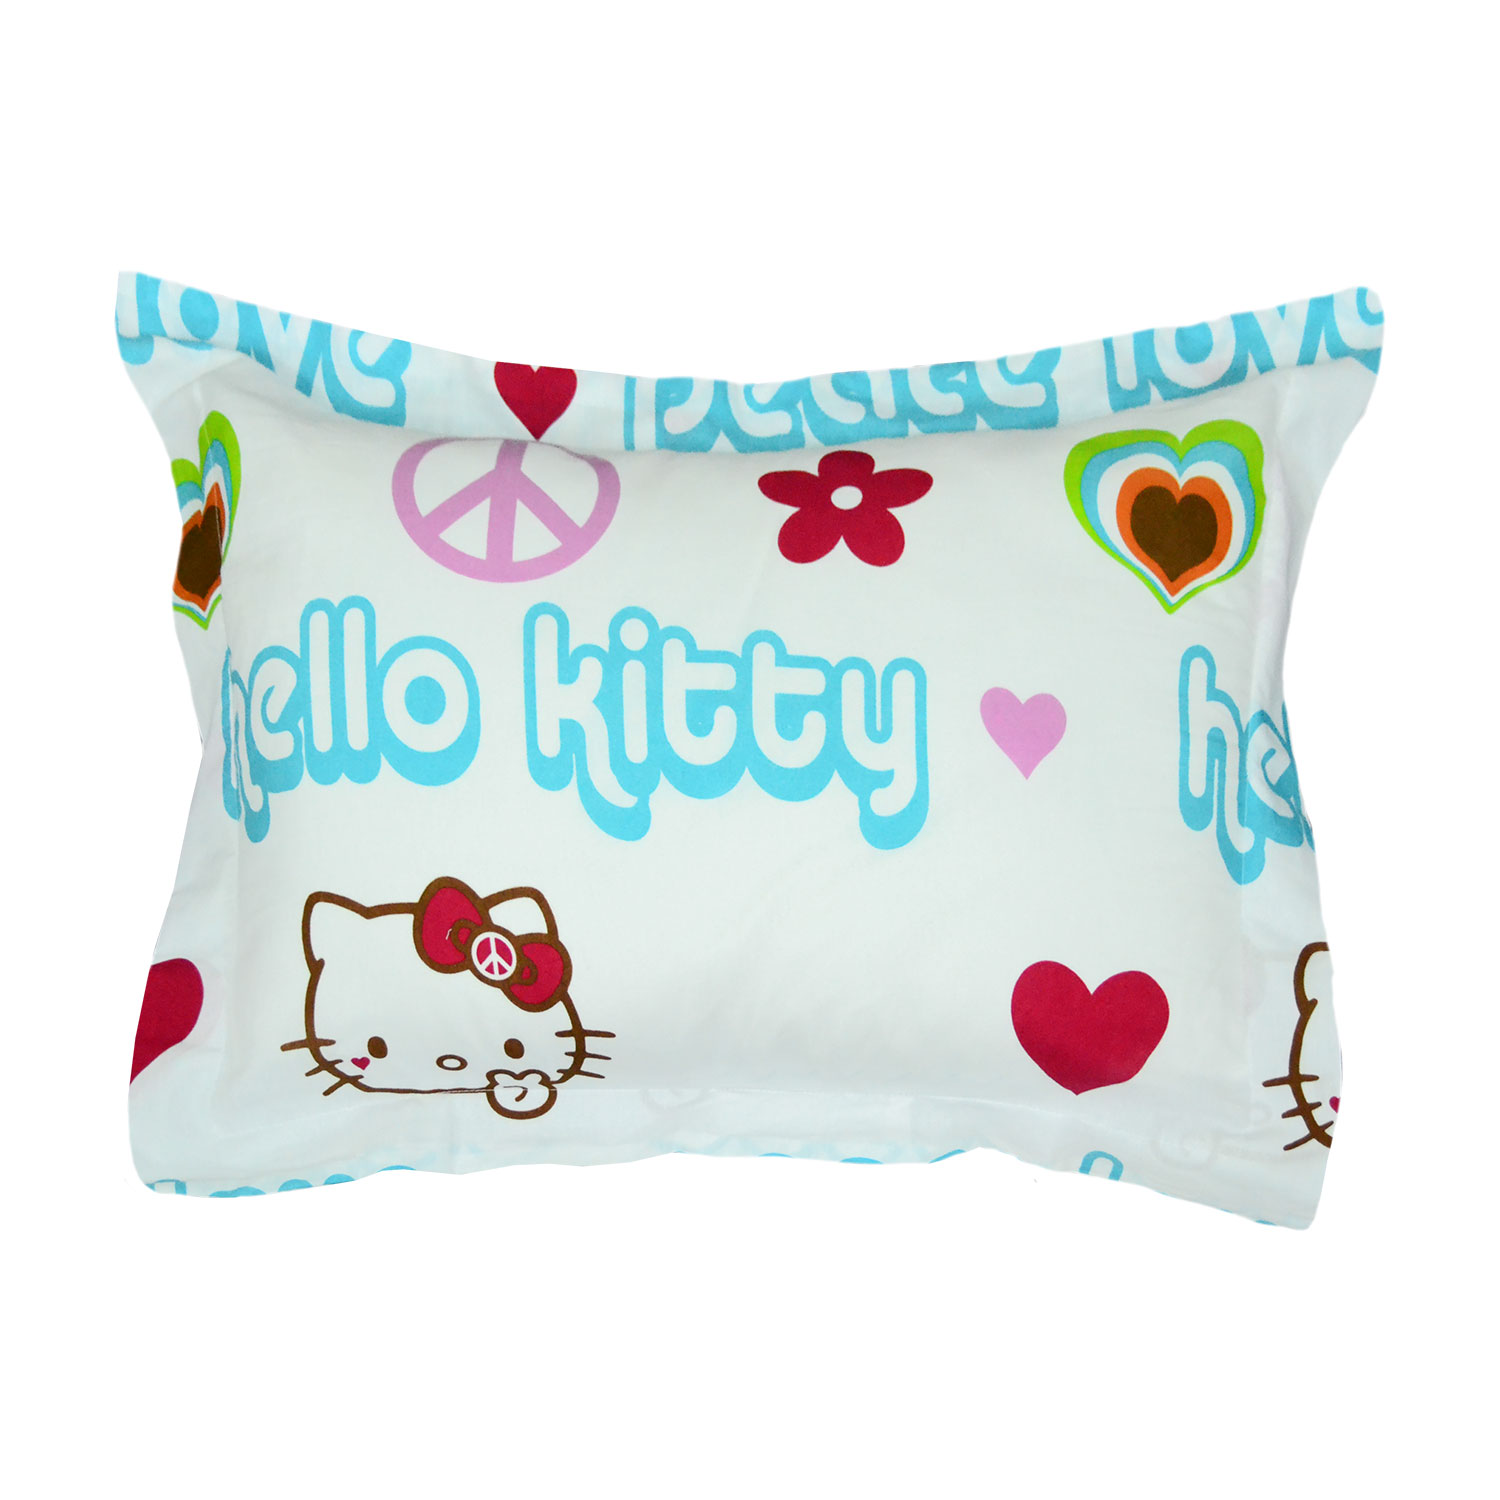 Sanrio Hello Kitty Pillow Sham Hearts and Peace Signs Bed Pillow Cover